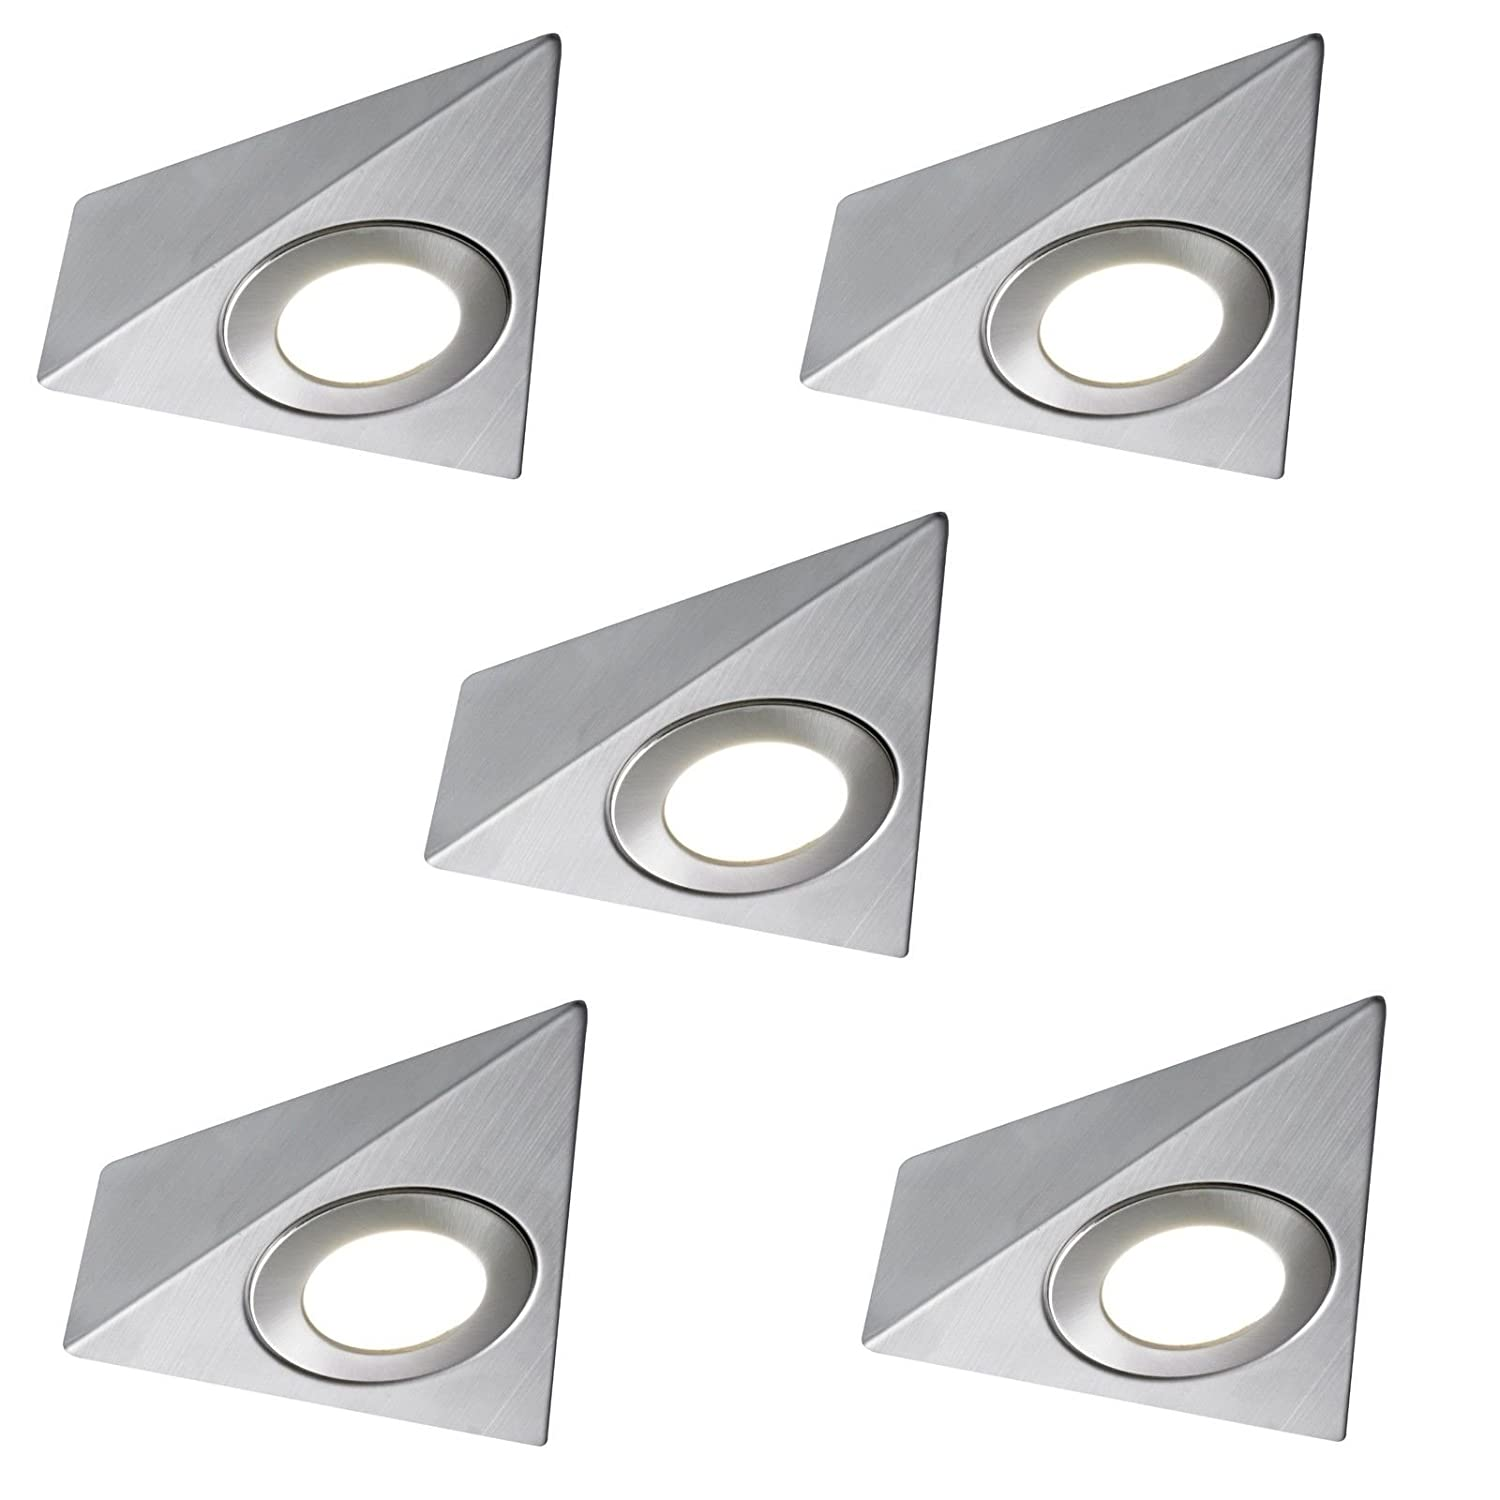 5 X LED MAINS TRIANGLE LIGHT KITCHEN UNDER CABINET UNIT CUPBOARD COOL WHITE Lighting Innovations